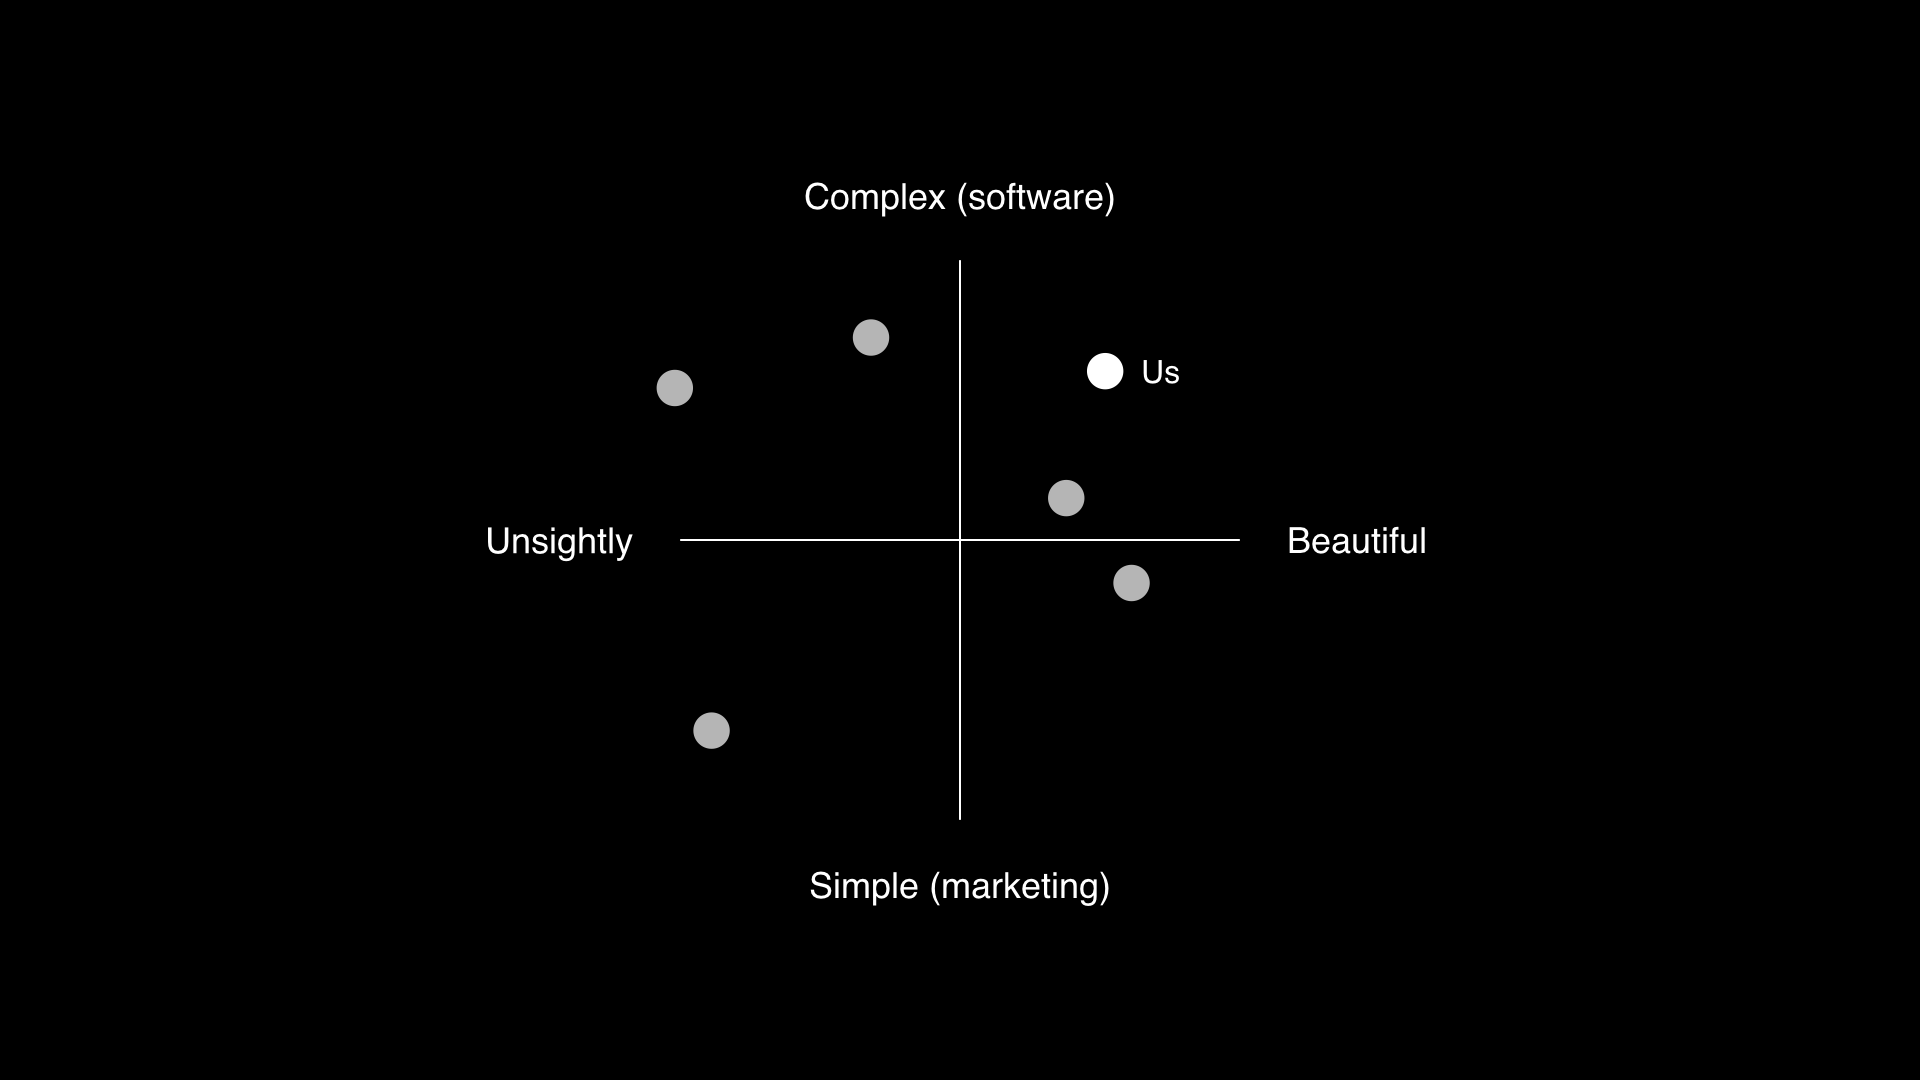 A graph showing a different dots mapped over two axes: unsightly - beautiful and simple - complex